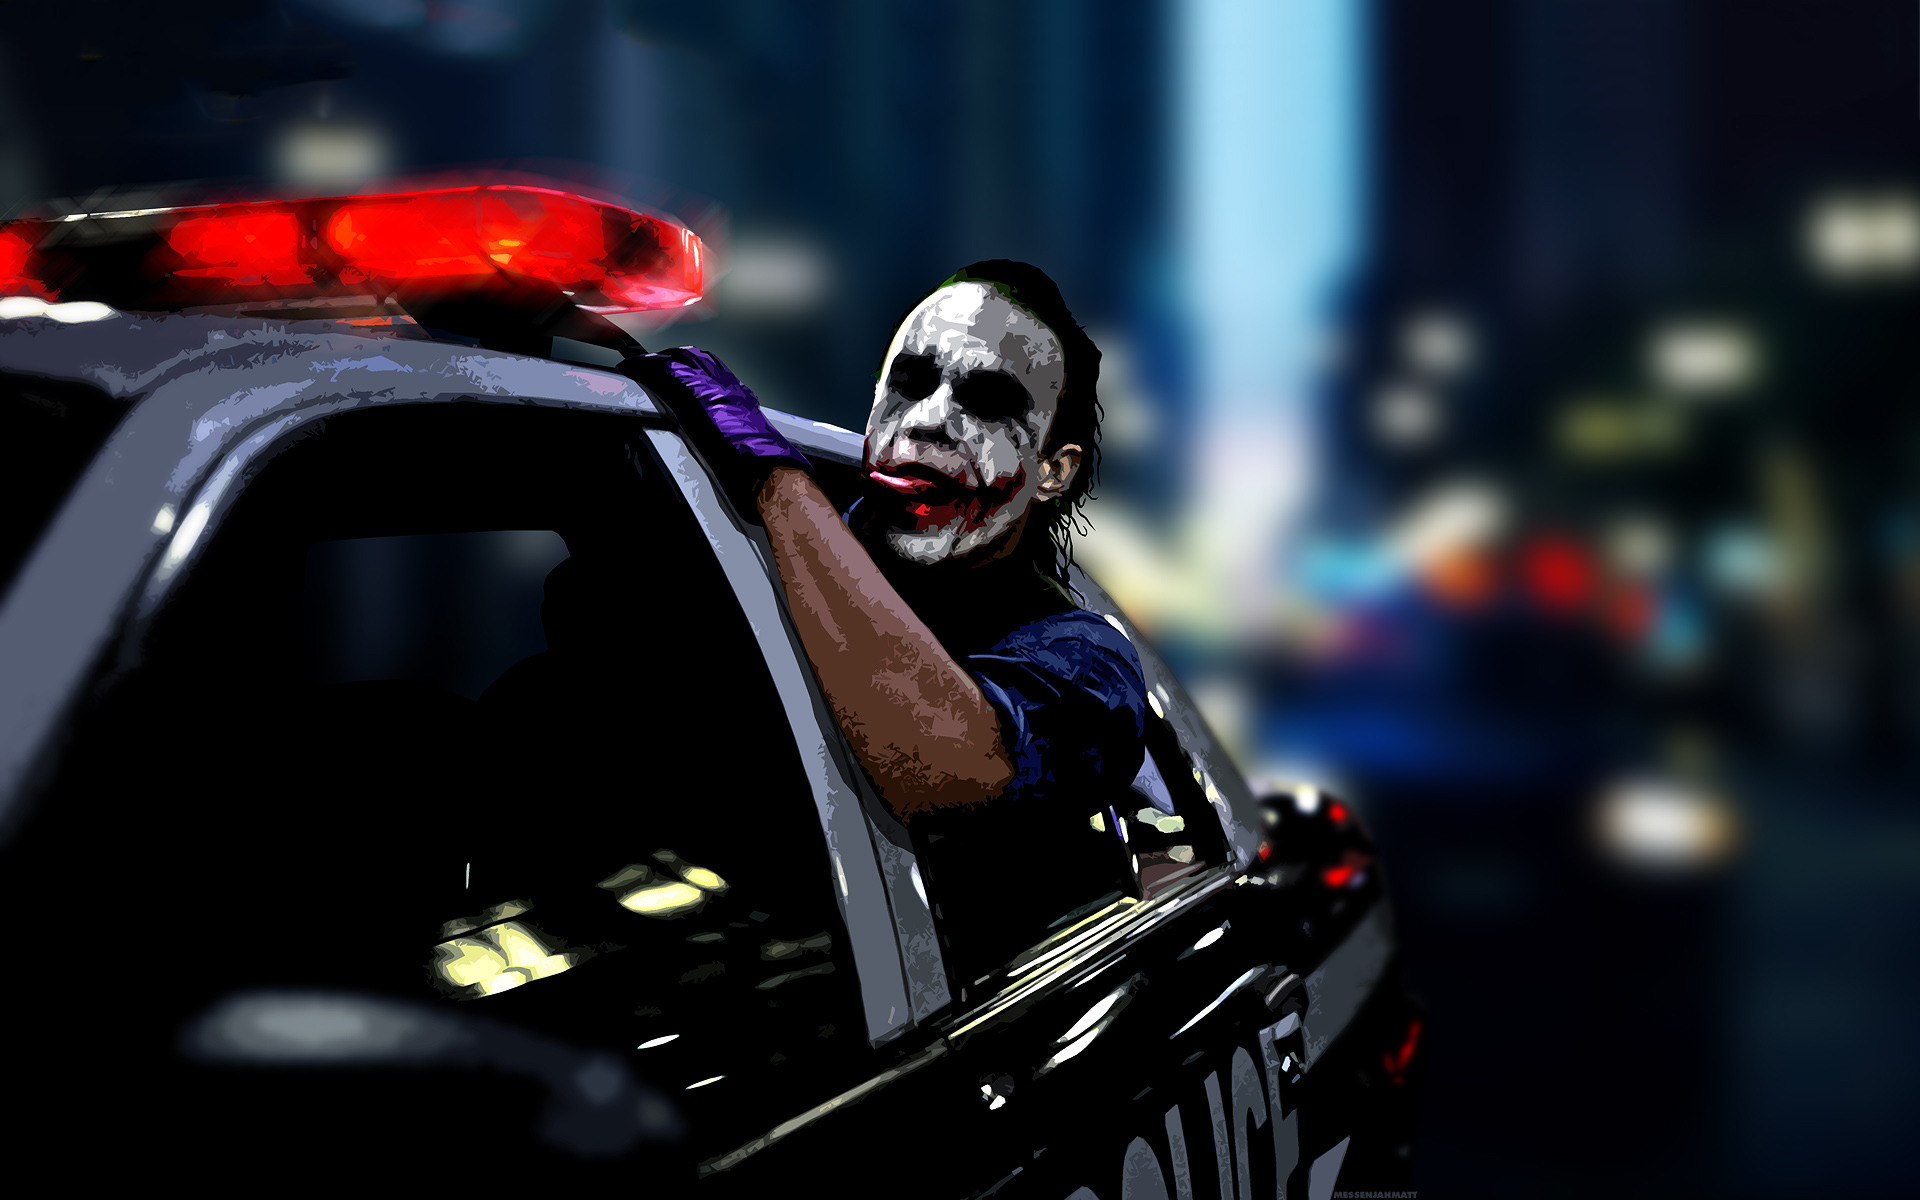 The joker police car